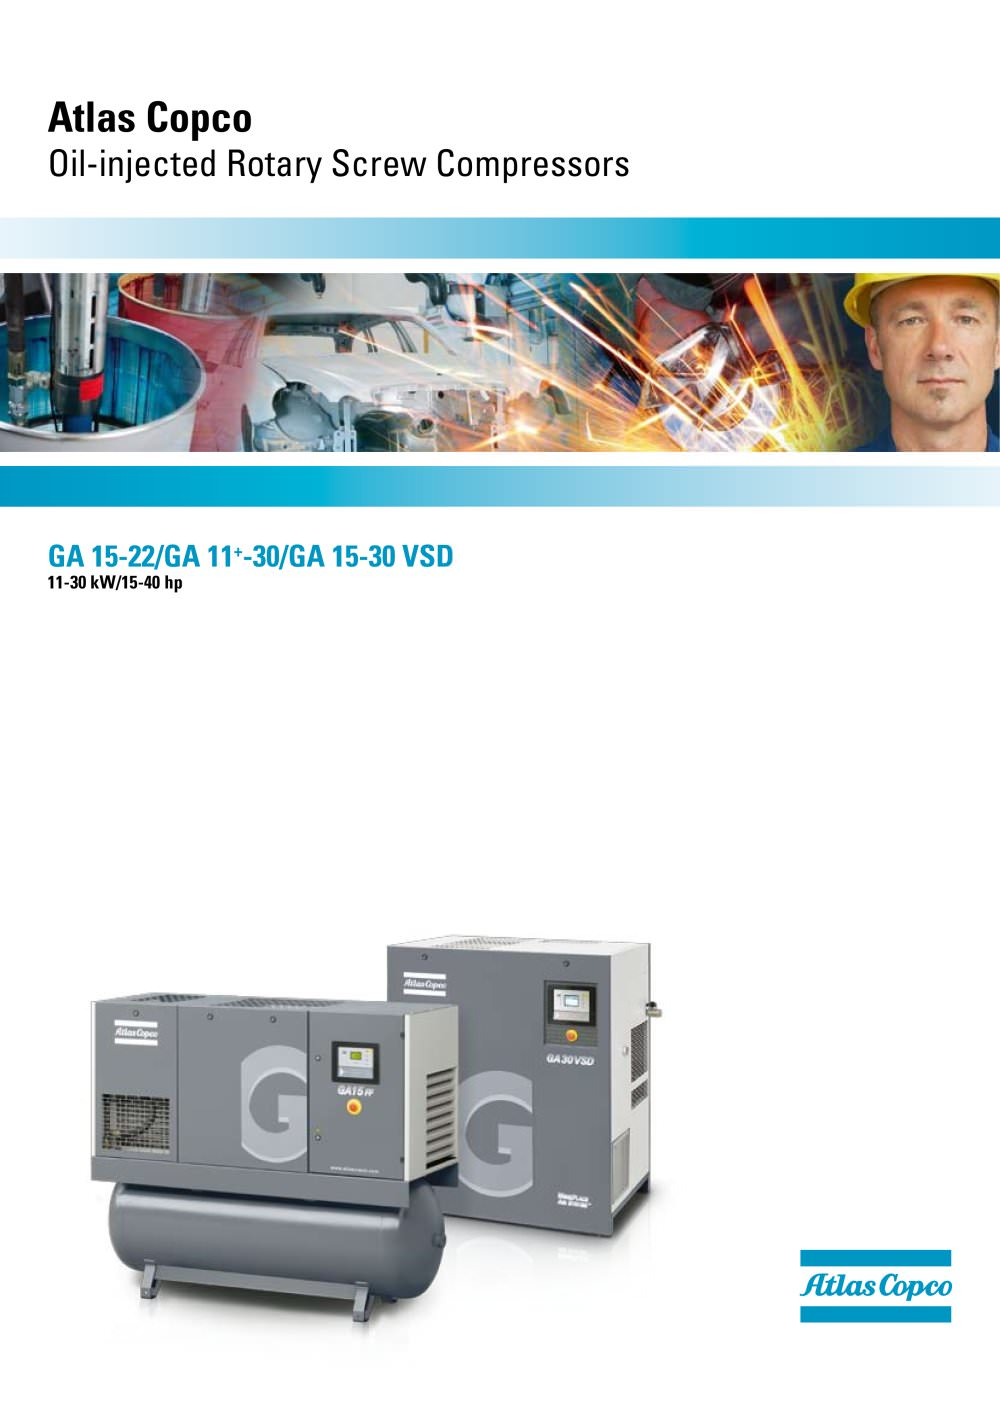 ga 15 22 ga 11 30 ga 15 30 vsd atlas copco oil injected rotary screw compressors 11 30 kw 15 40 hp 124841_1b ga 15 22 ga 11 30 ga 15 30 vsd atlas copco oil injected rotary atlas copco ga11 wiring diagram at fashall.co